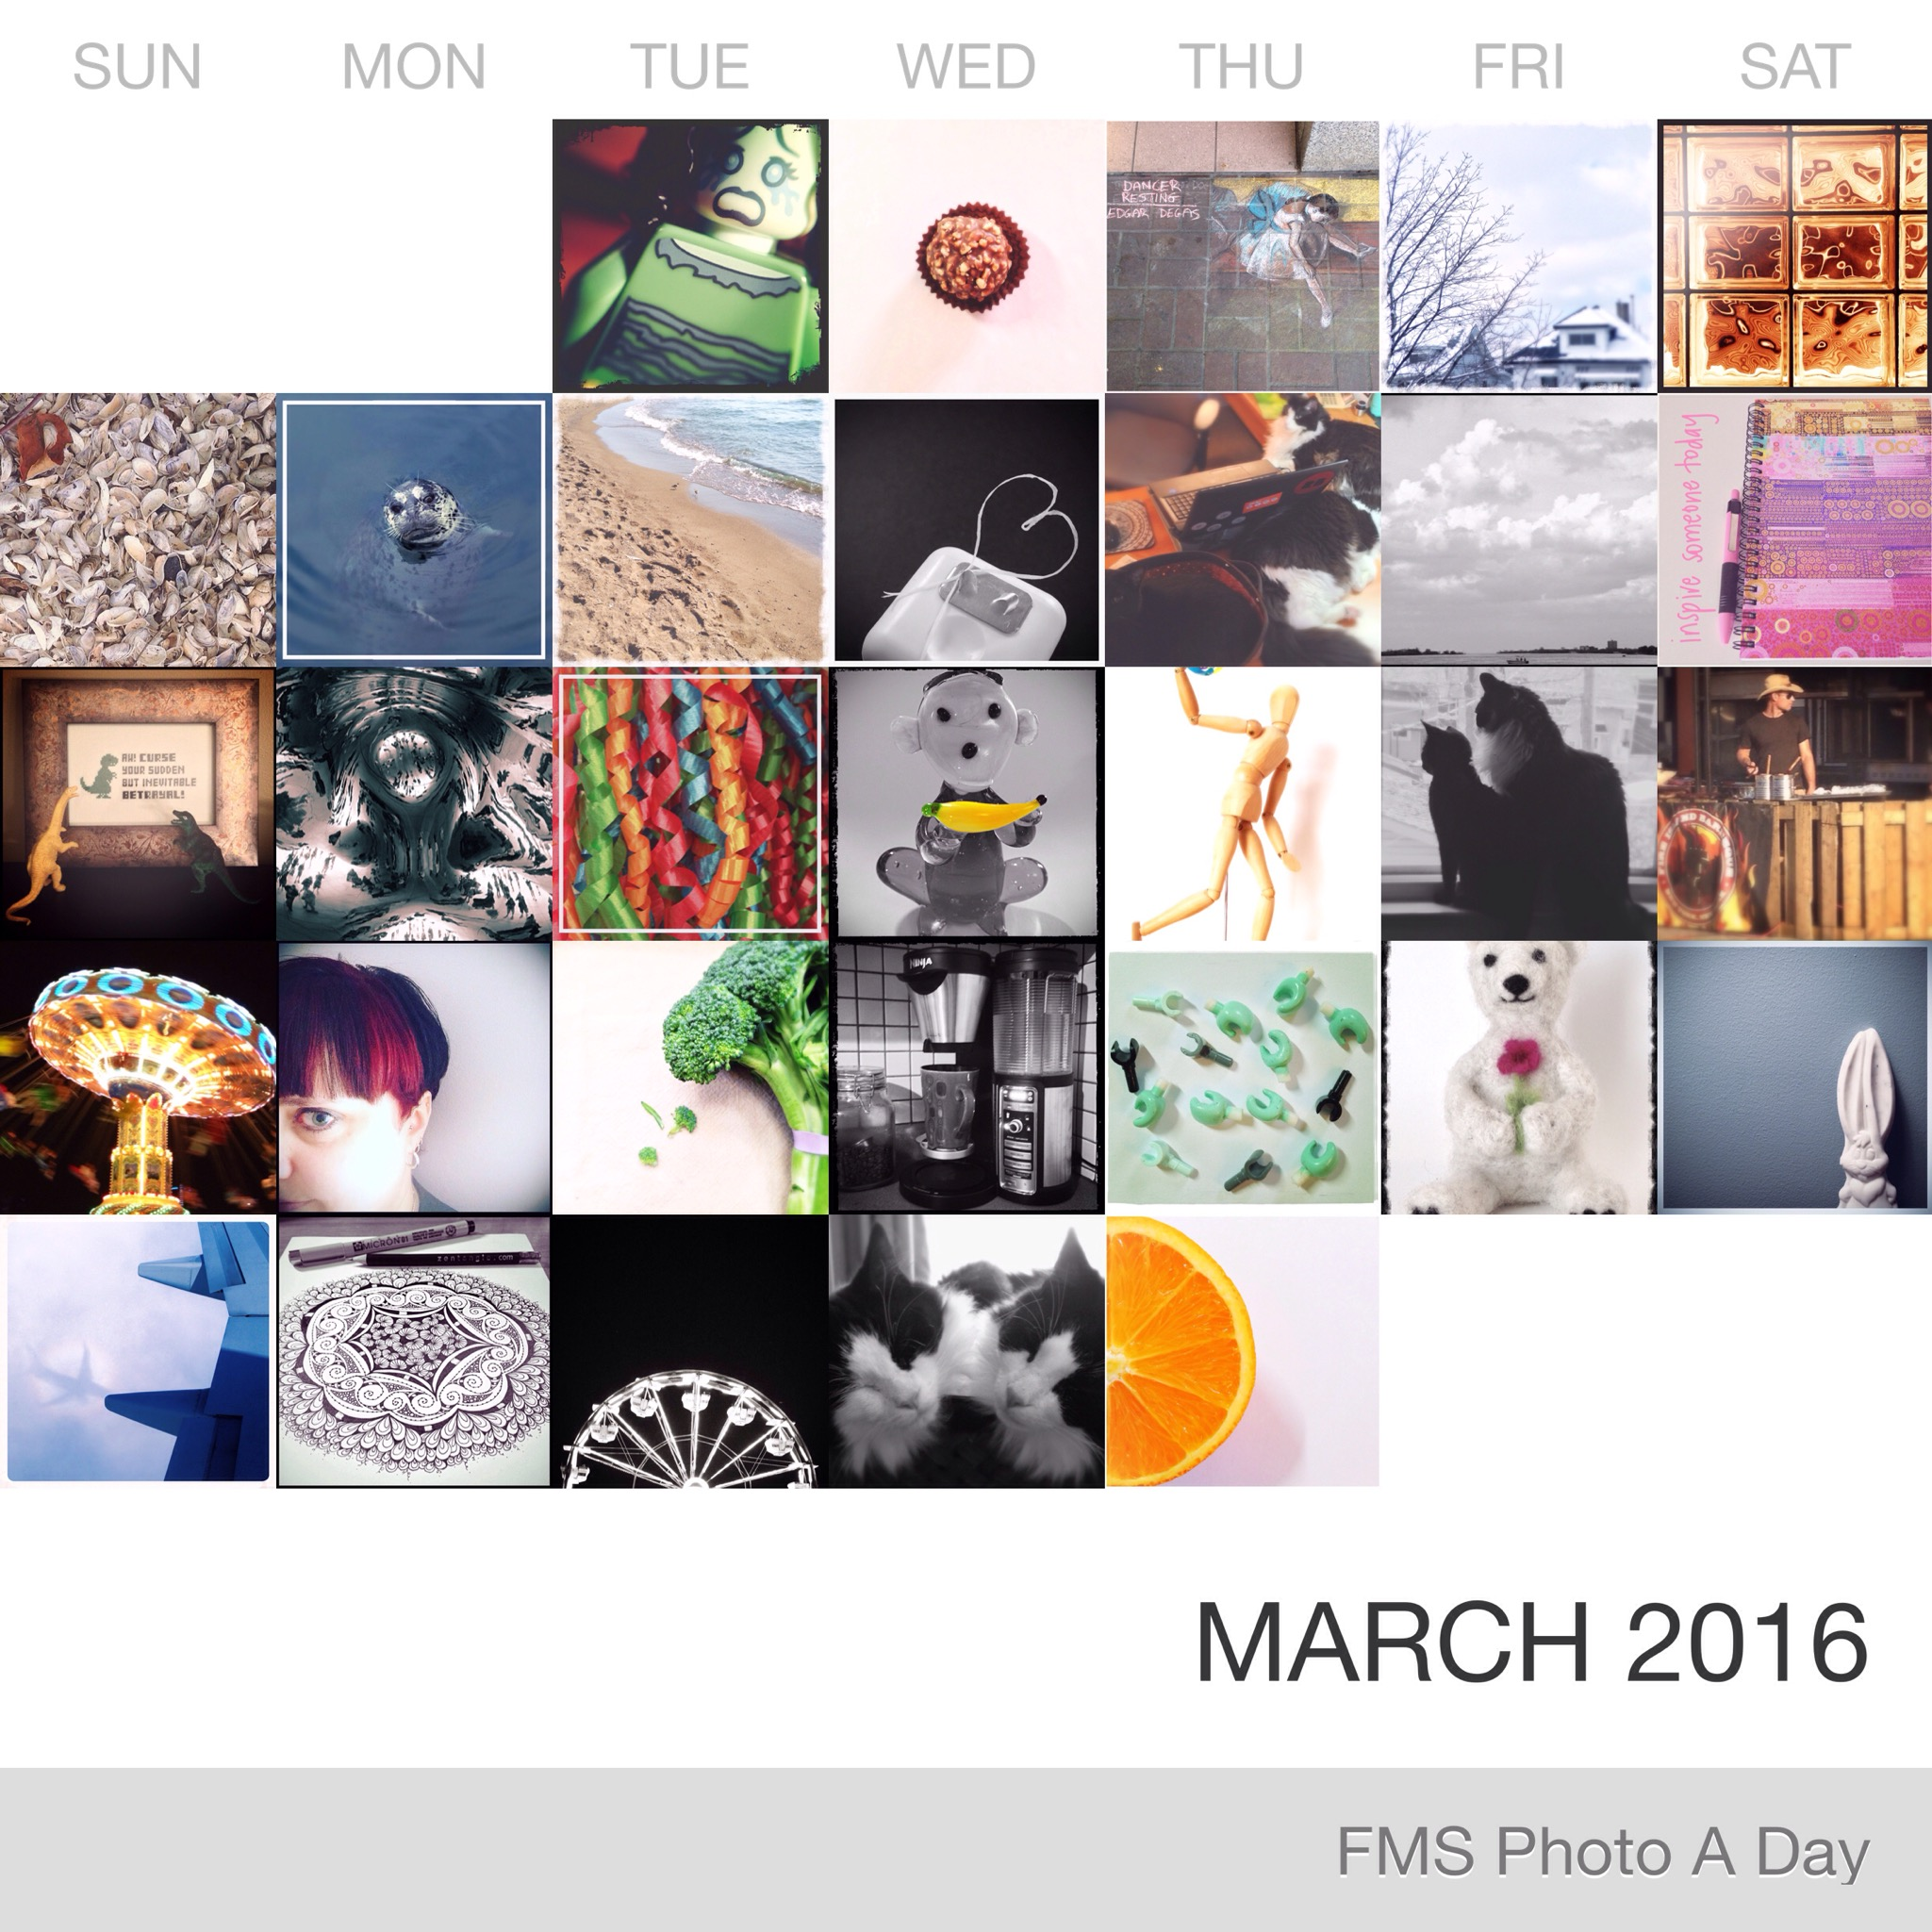 FMS Photo A Day March 2016